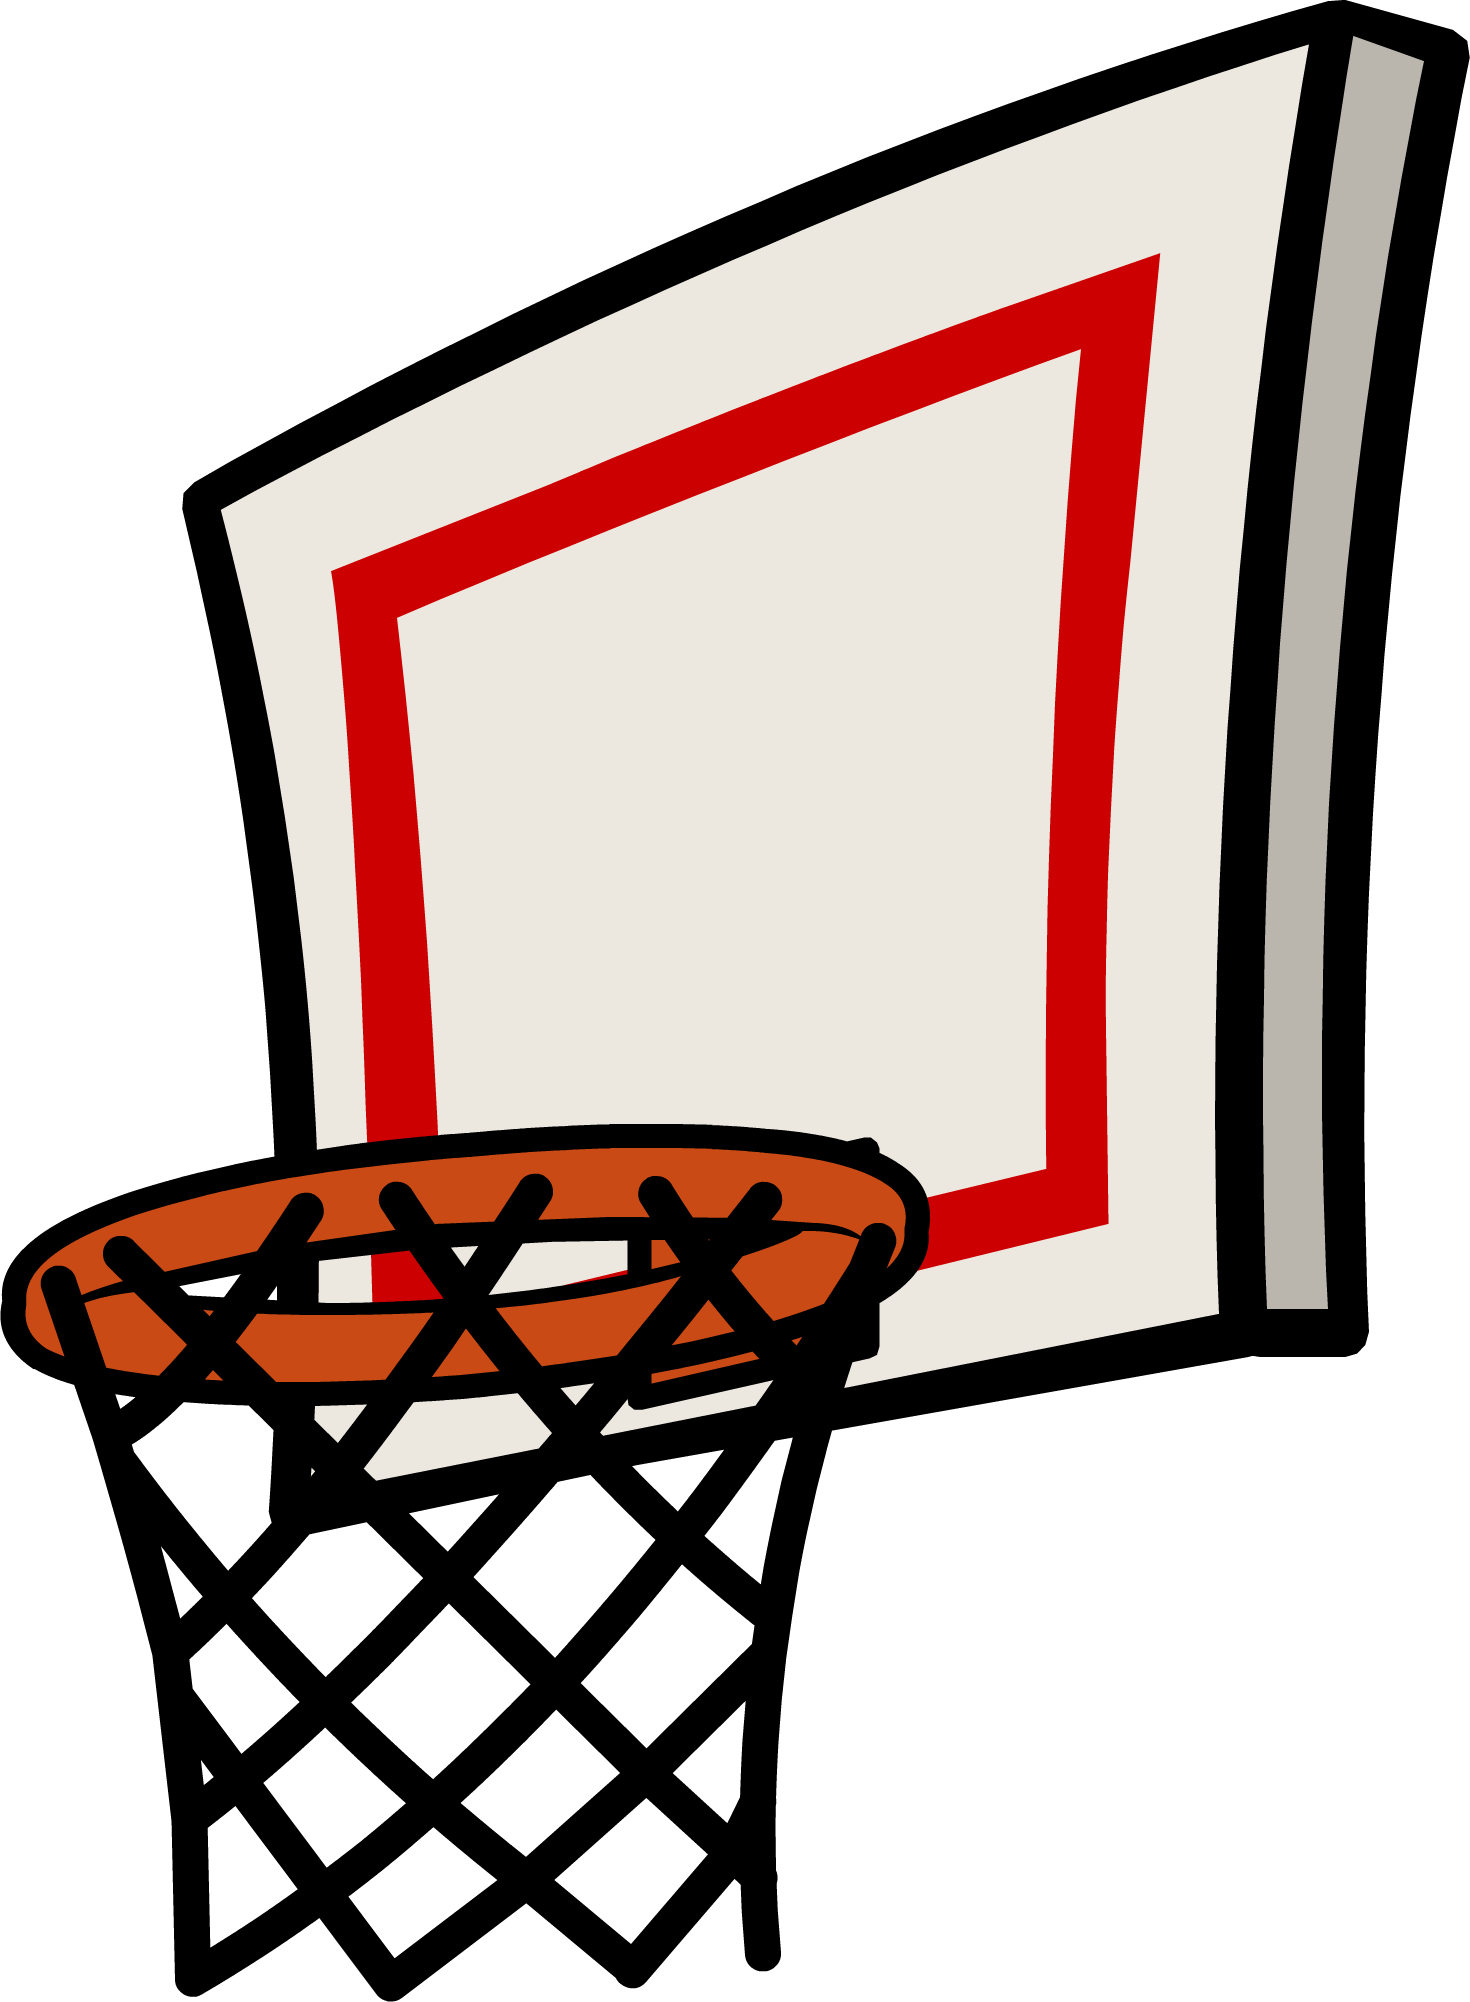 Basketball net clipart vector free download 28+ Collection of Basketball Goal Clipart Transparent | High quality ... vector free download